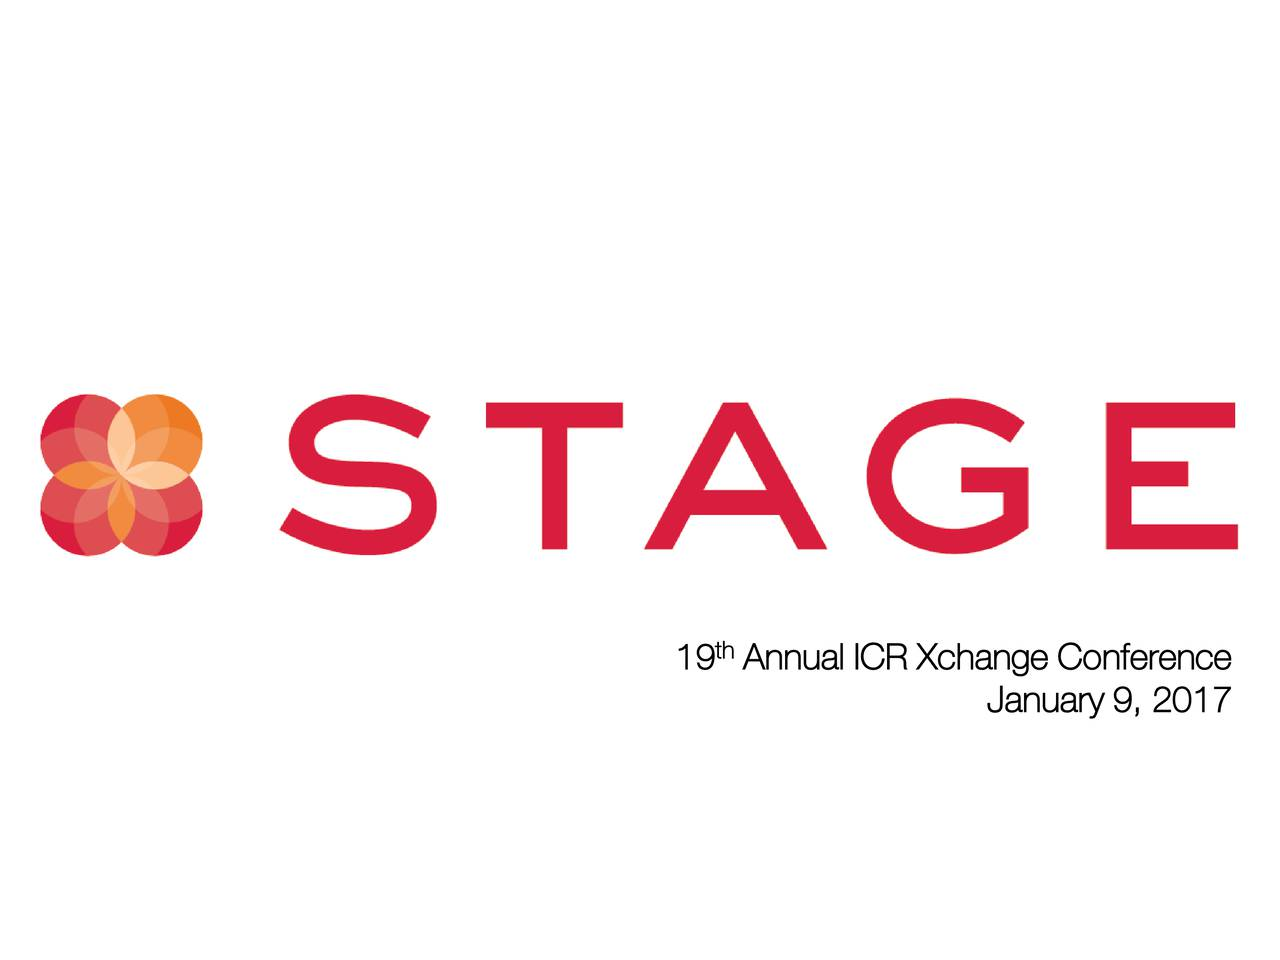 19 Annual ICR Xchange Conference January 9, 2017